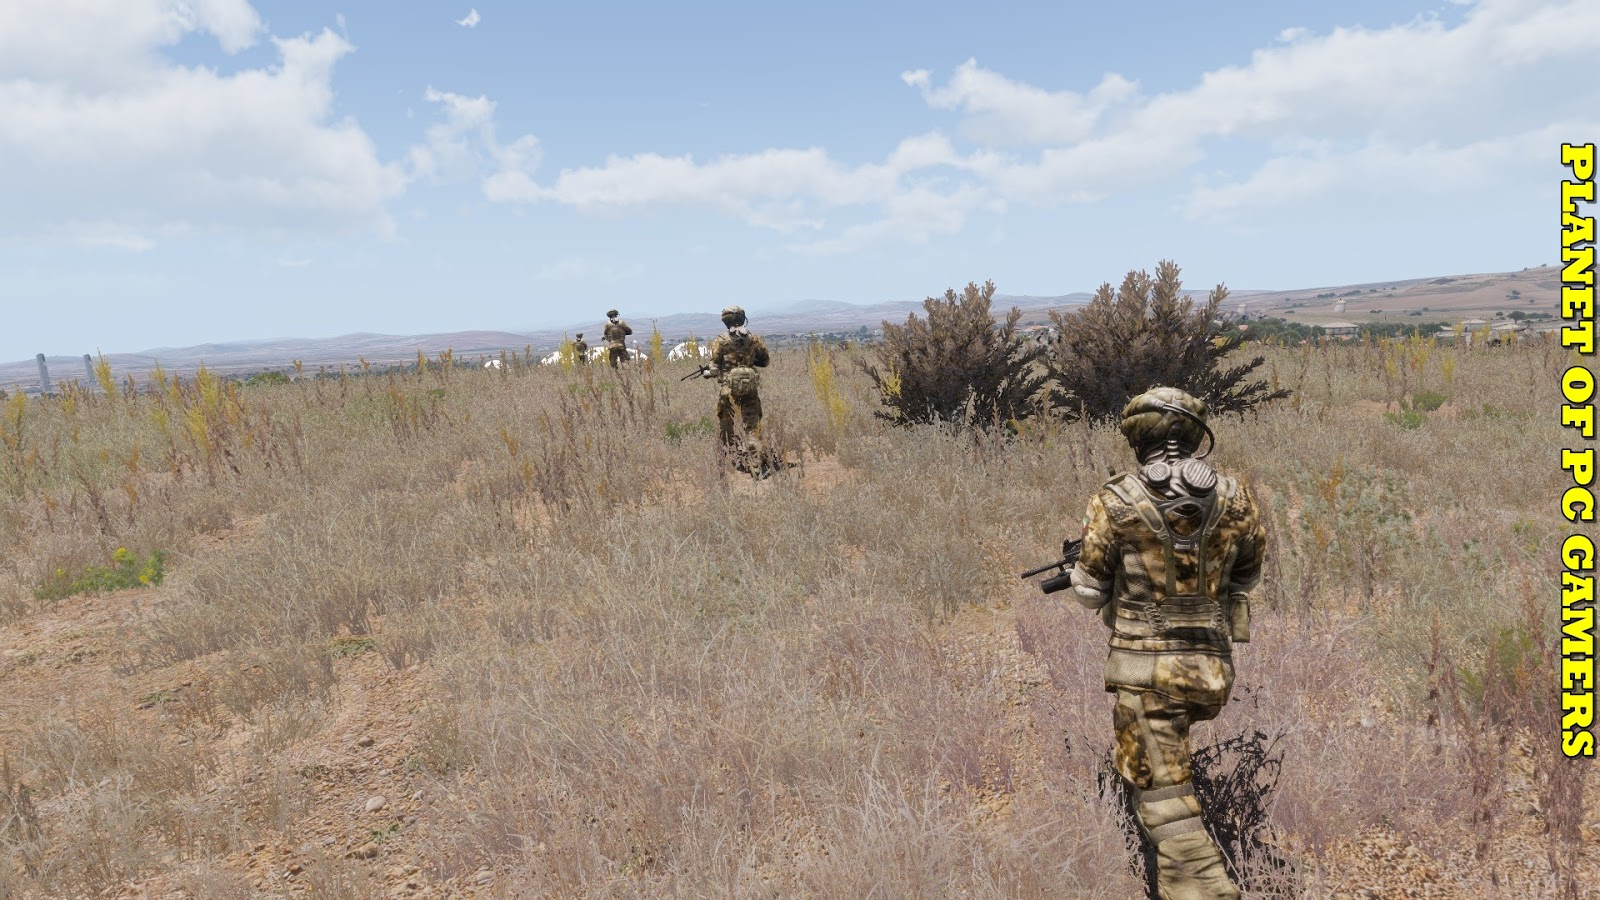 Arma Iii Download For Pc